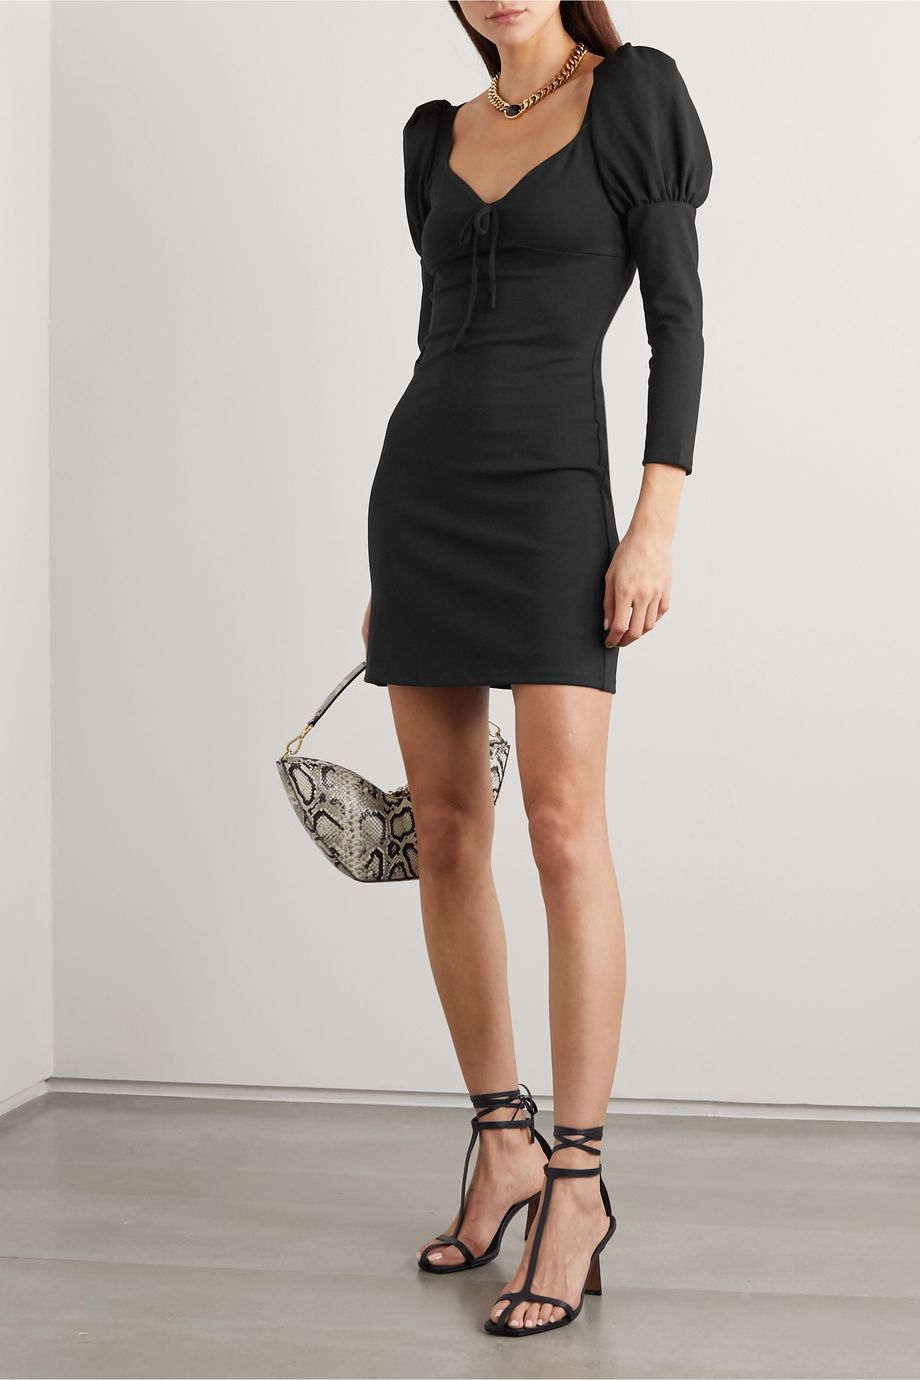 Reformation + NET SUSTAIN Helga bow-detailed stretch-Micro Modal mini dress